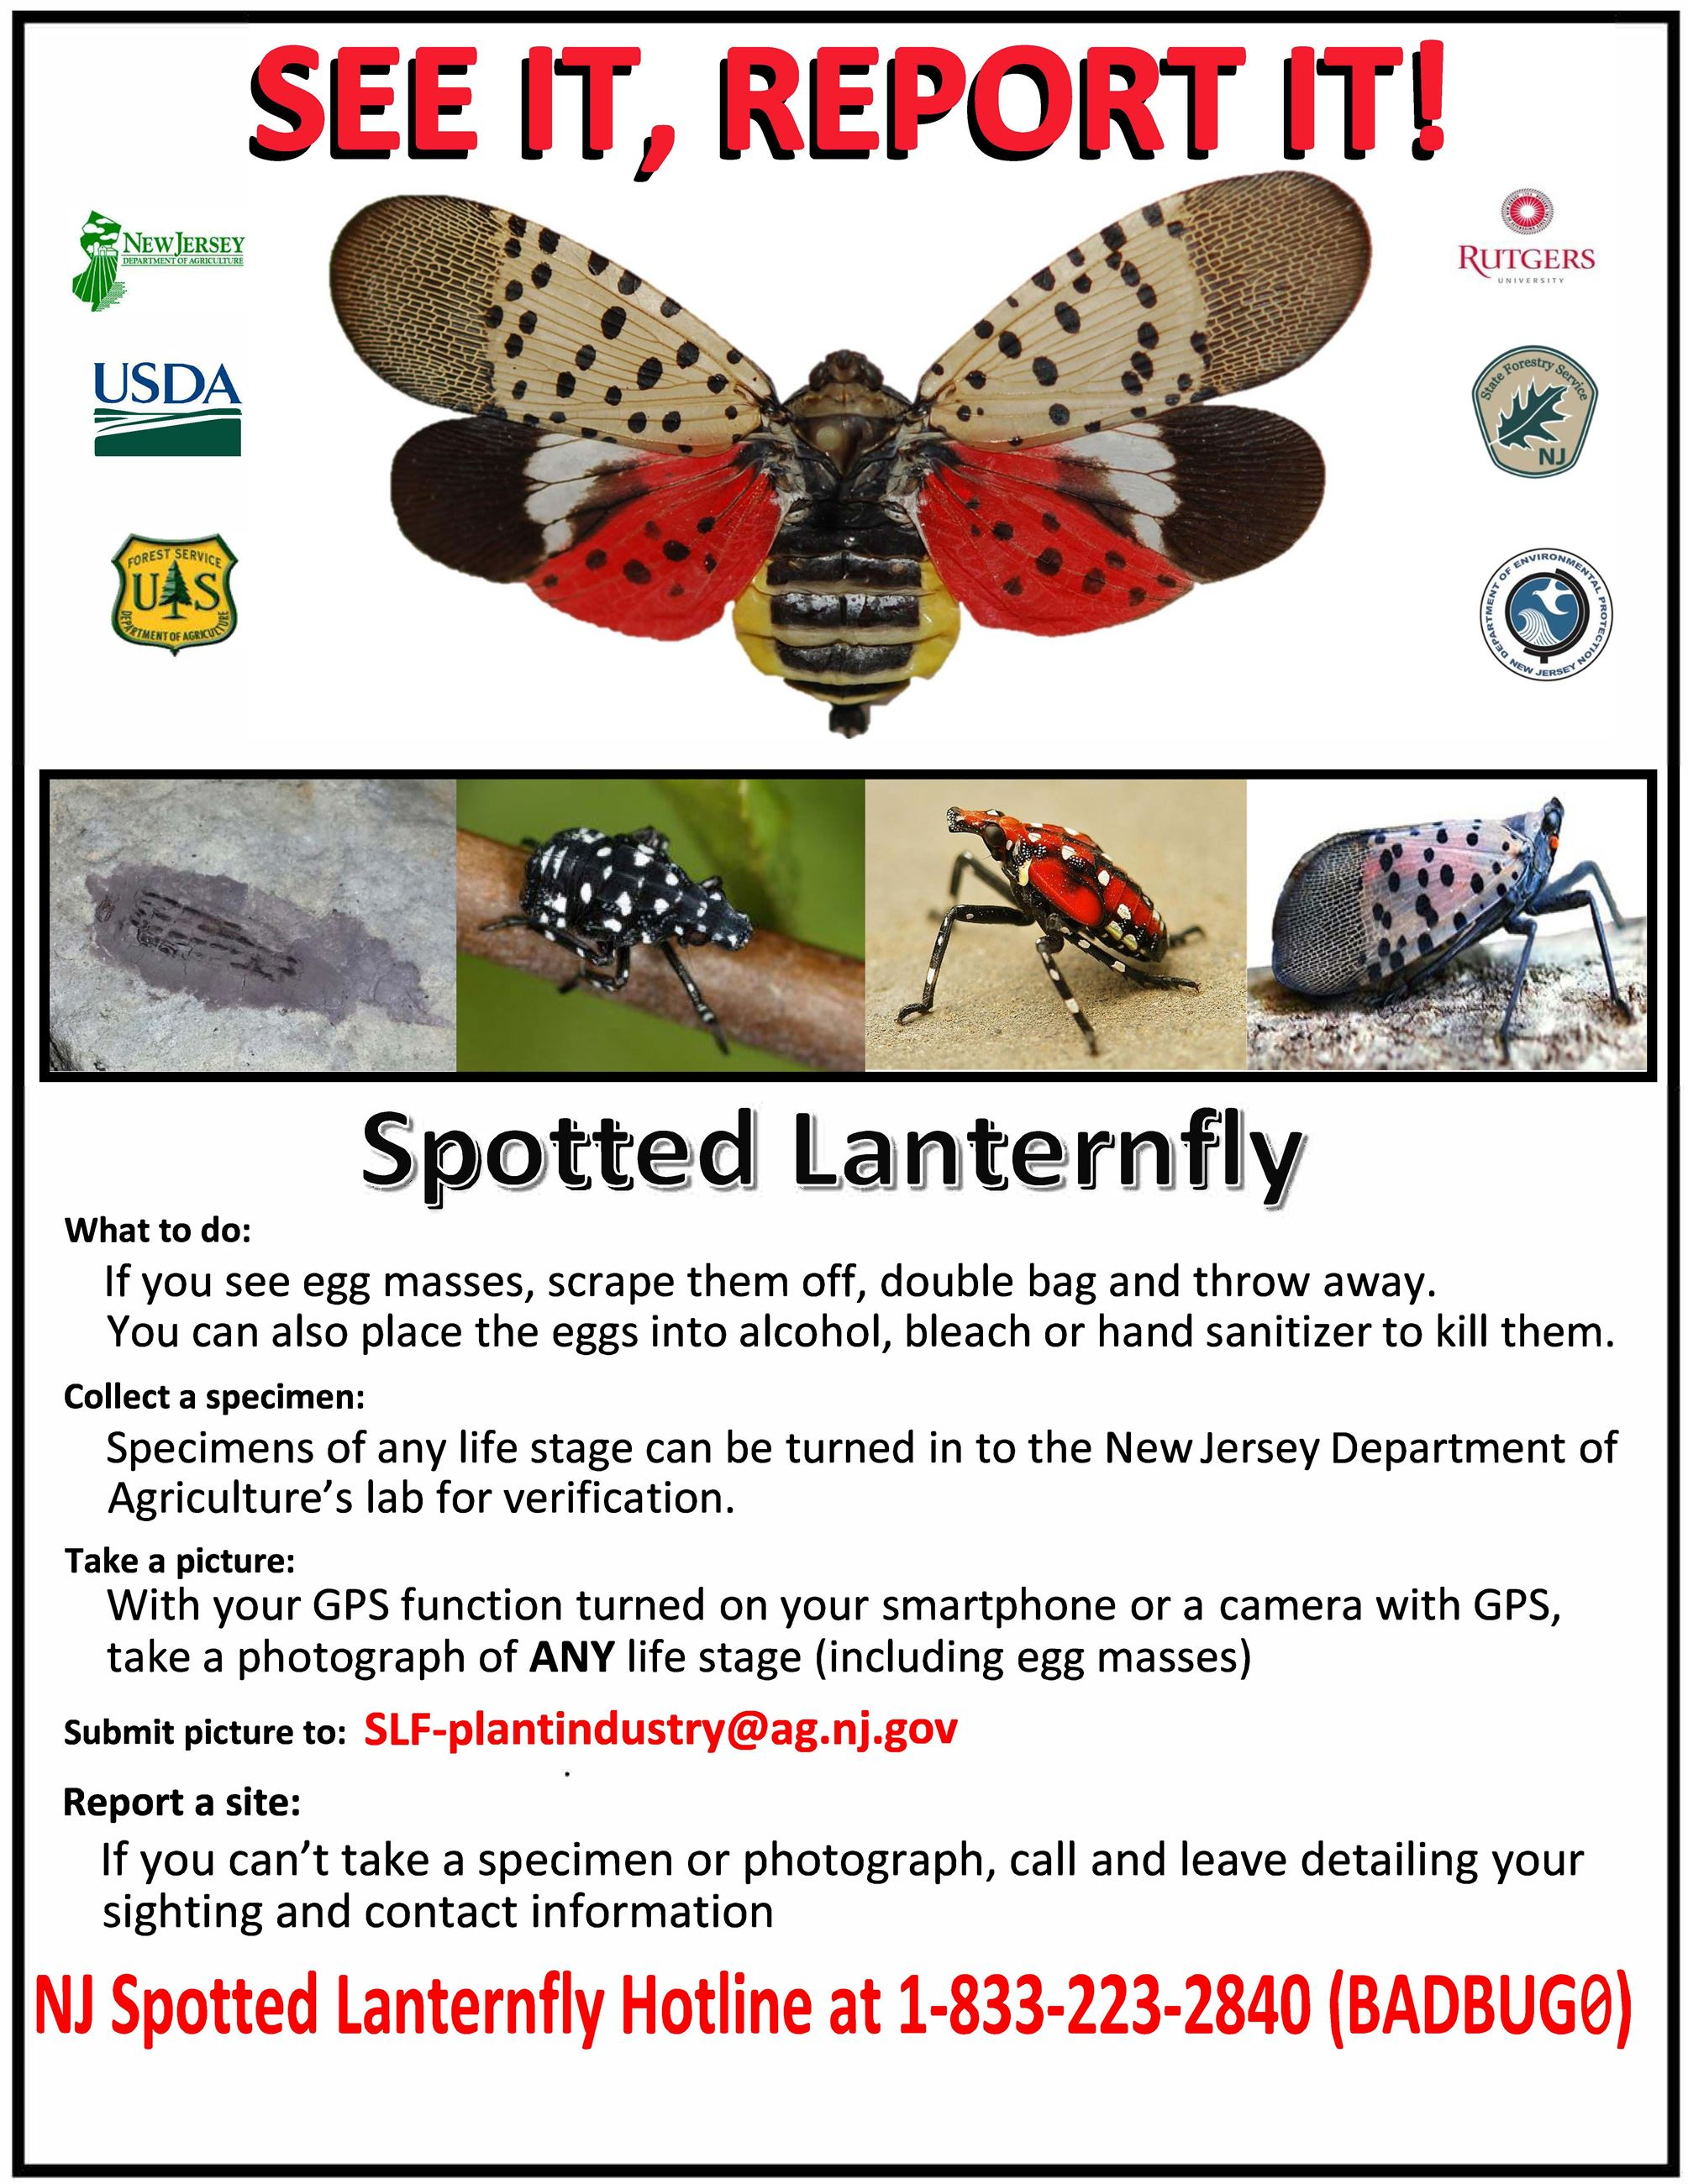 Spotted Lanternfly info card